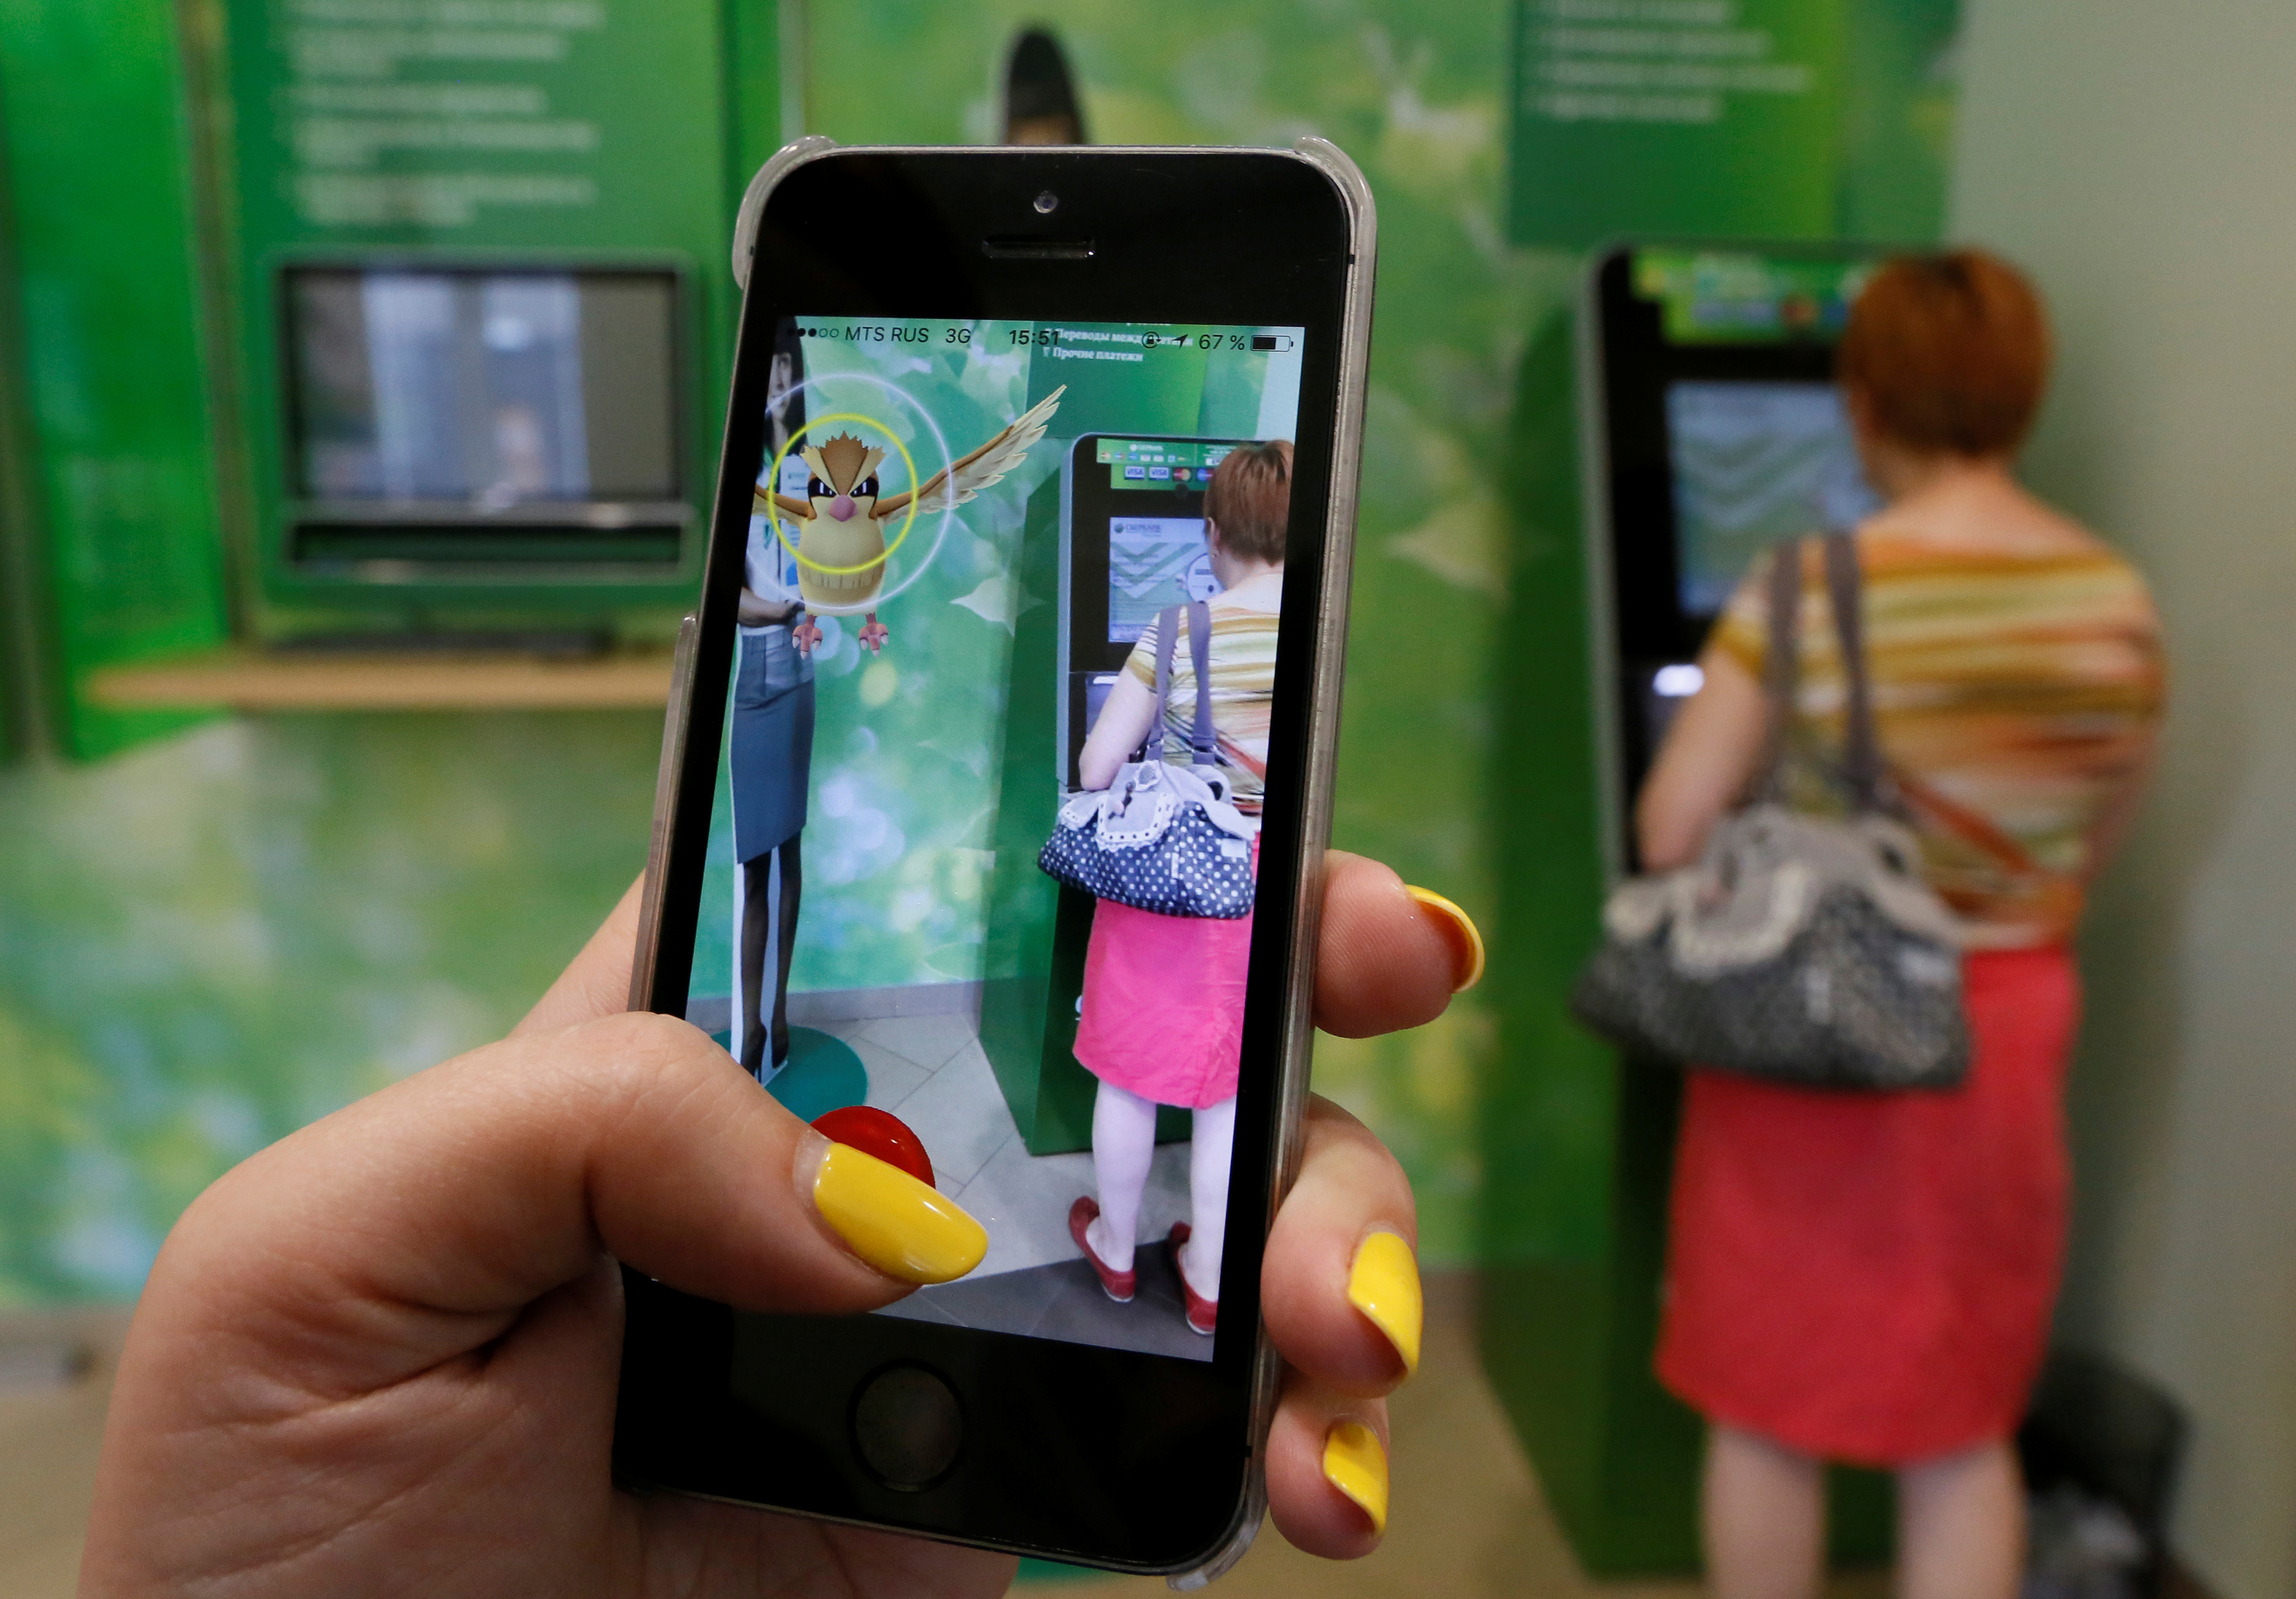 A woman plays the augmented reality mobile game  Pokemon Go  by Nintendo, as a visitor uses an (ATM) at a branch of Sberbank in central Krasnoyarsk, Siberia, Russia, July 20, 2016.